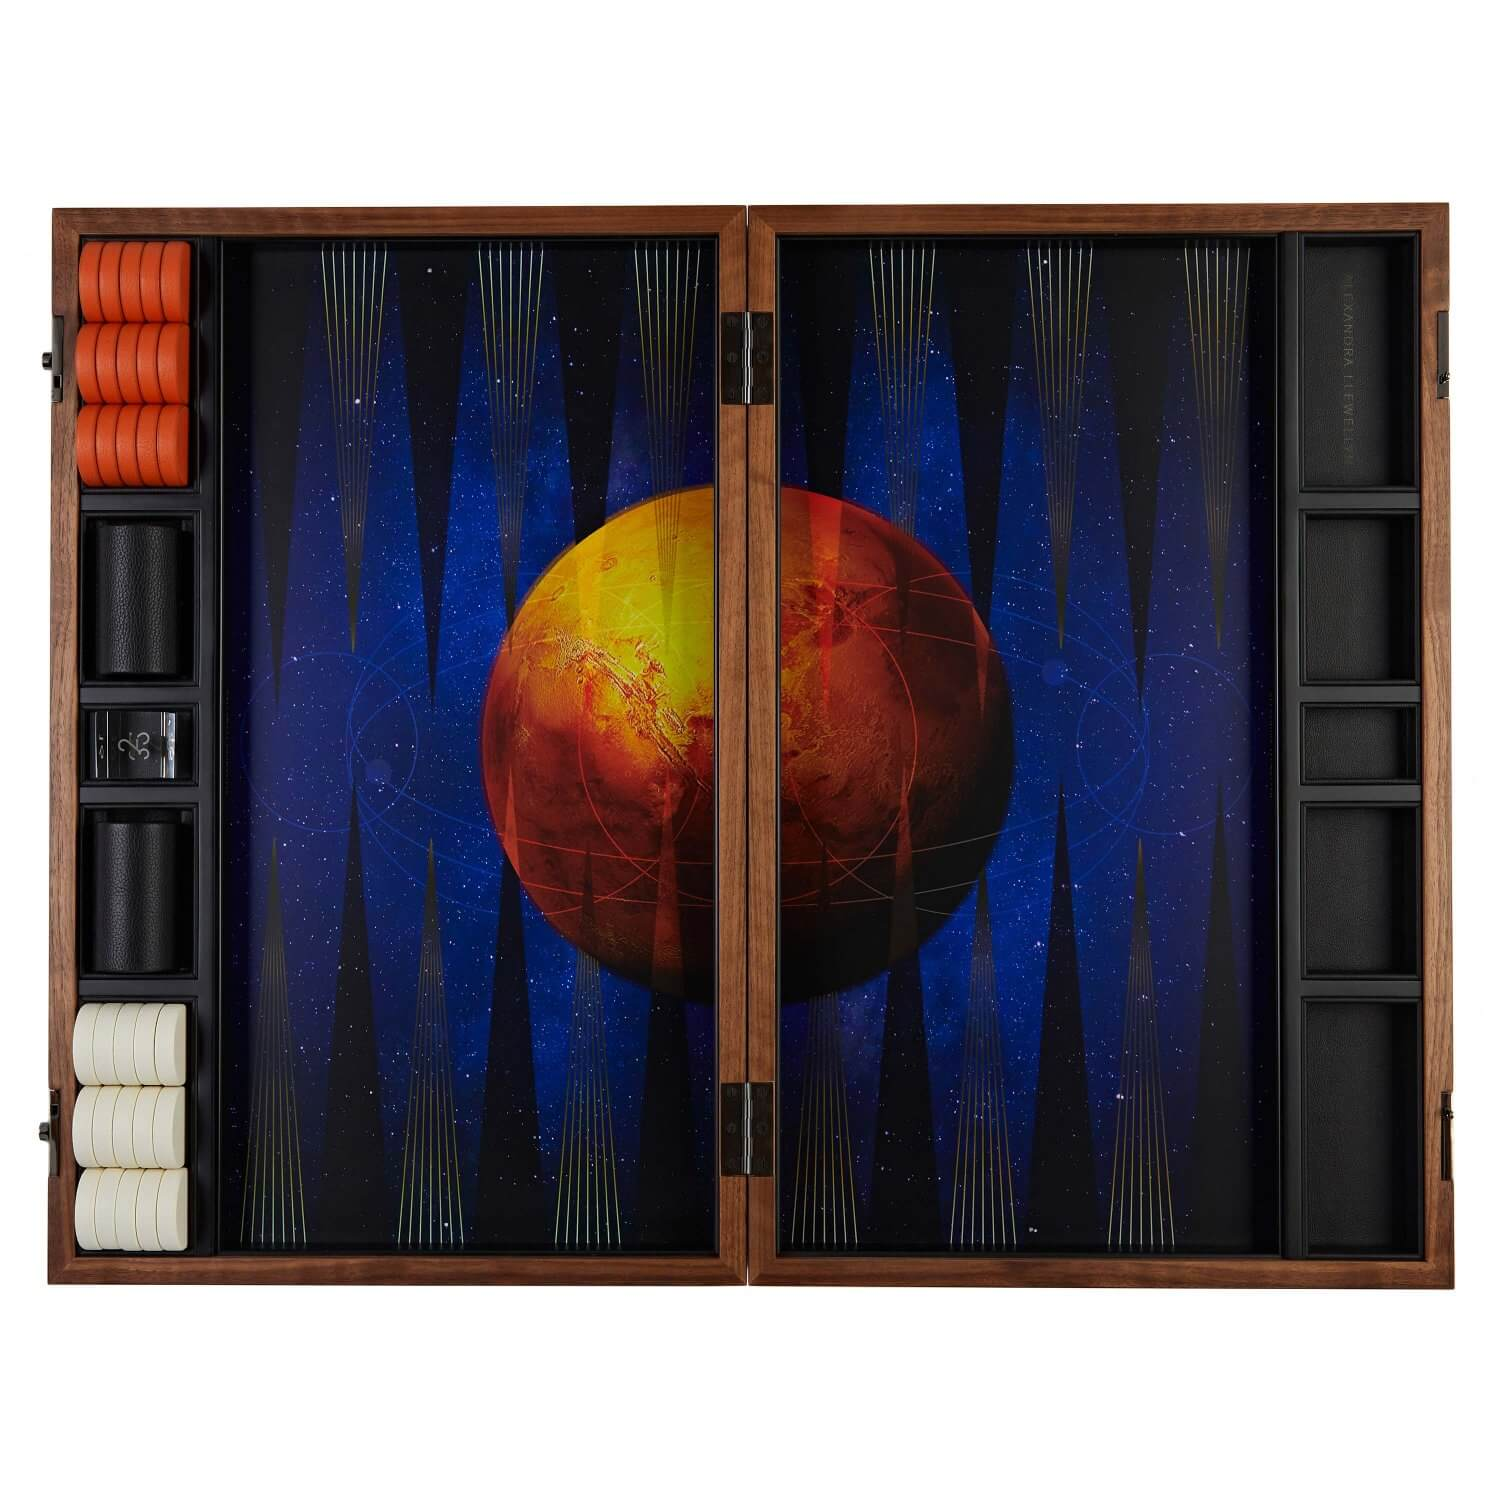 A bespoke 'Mars' and space design Photographic backgammon board